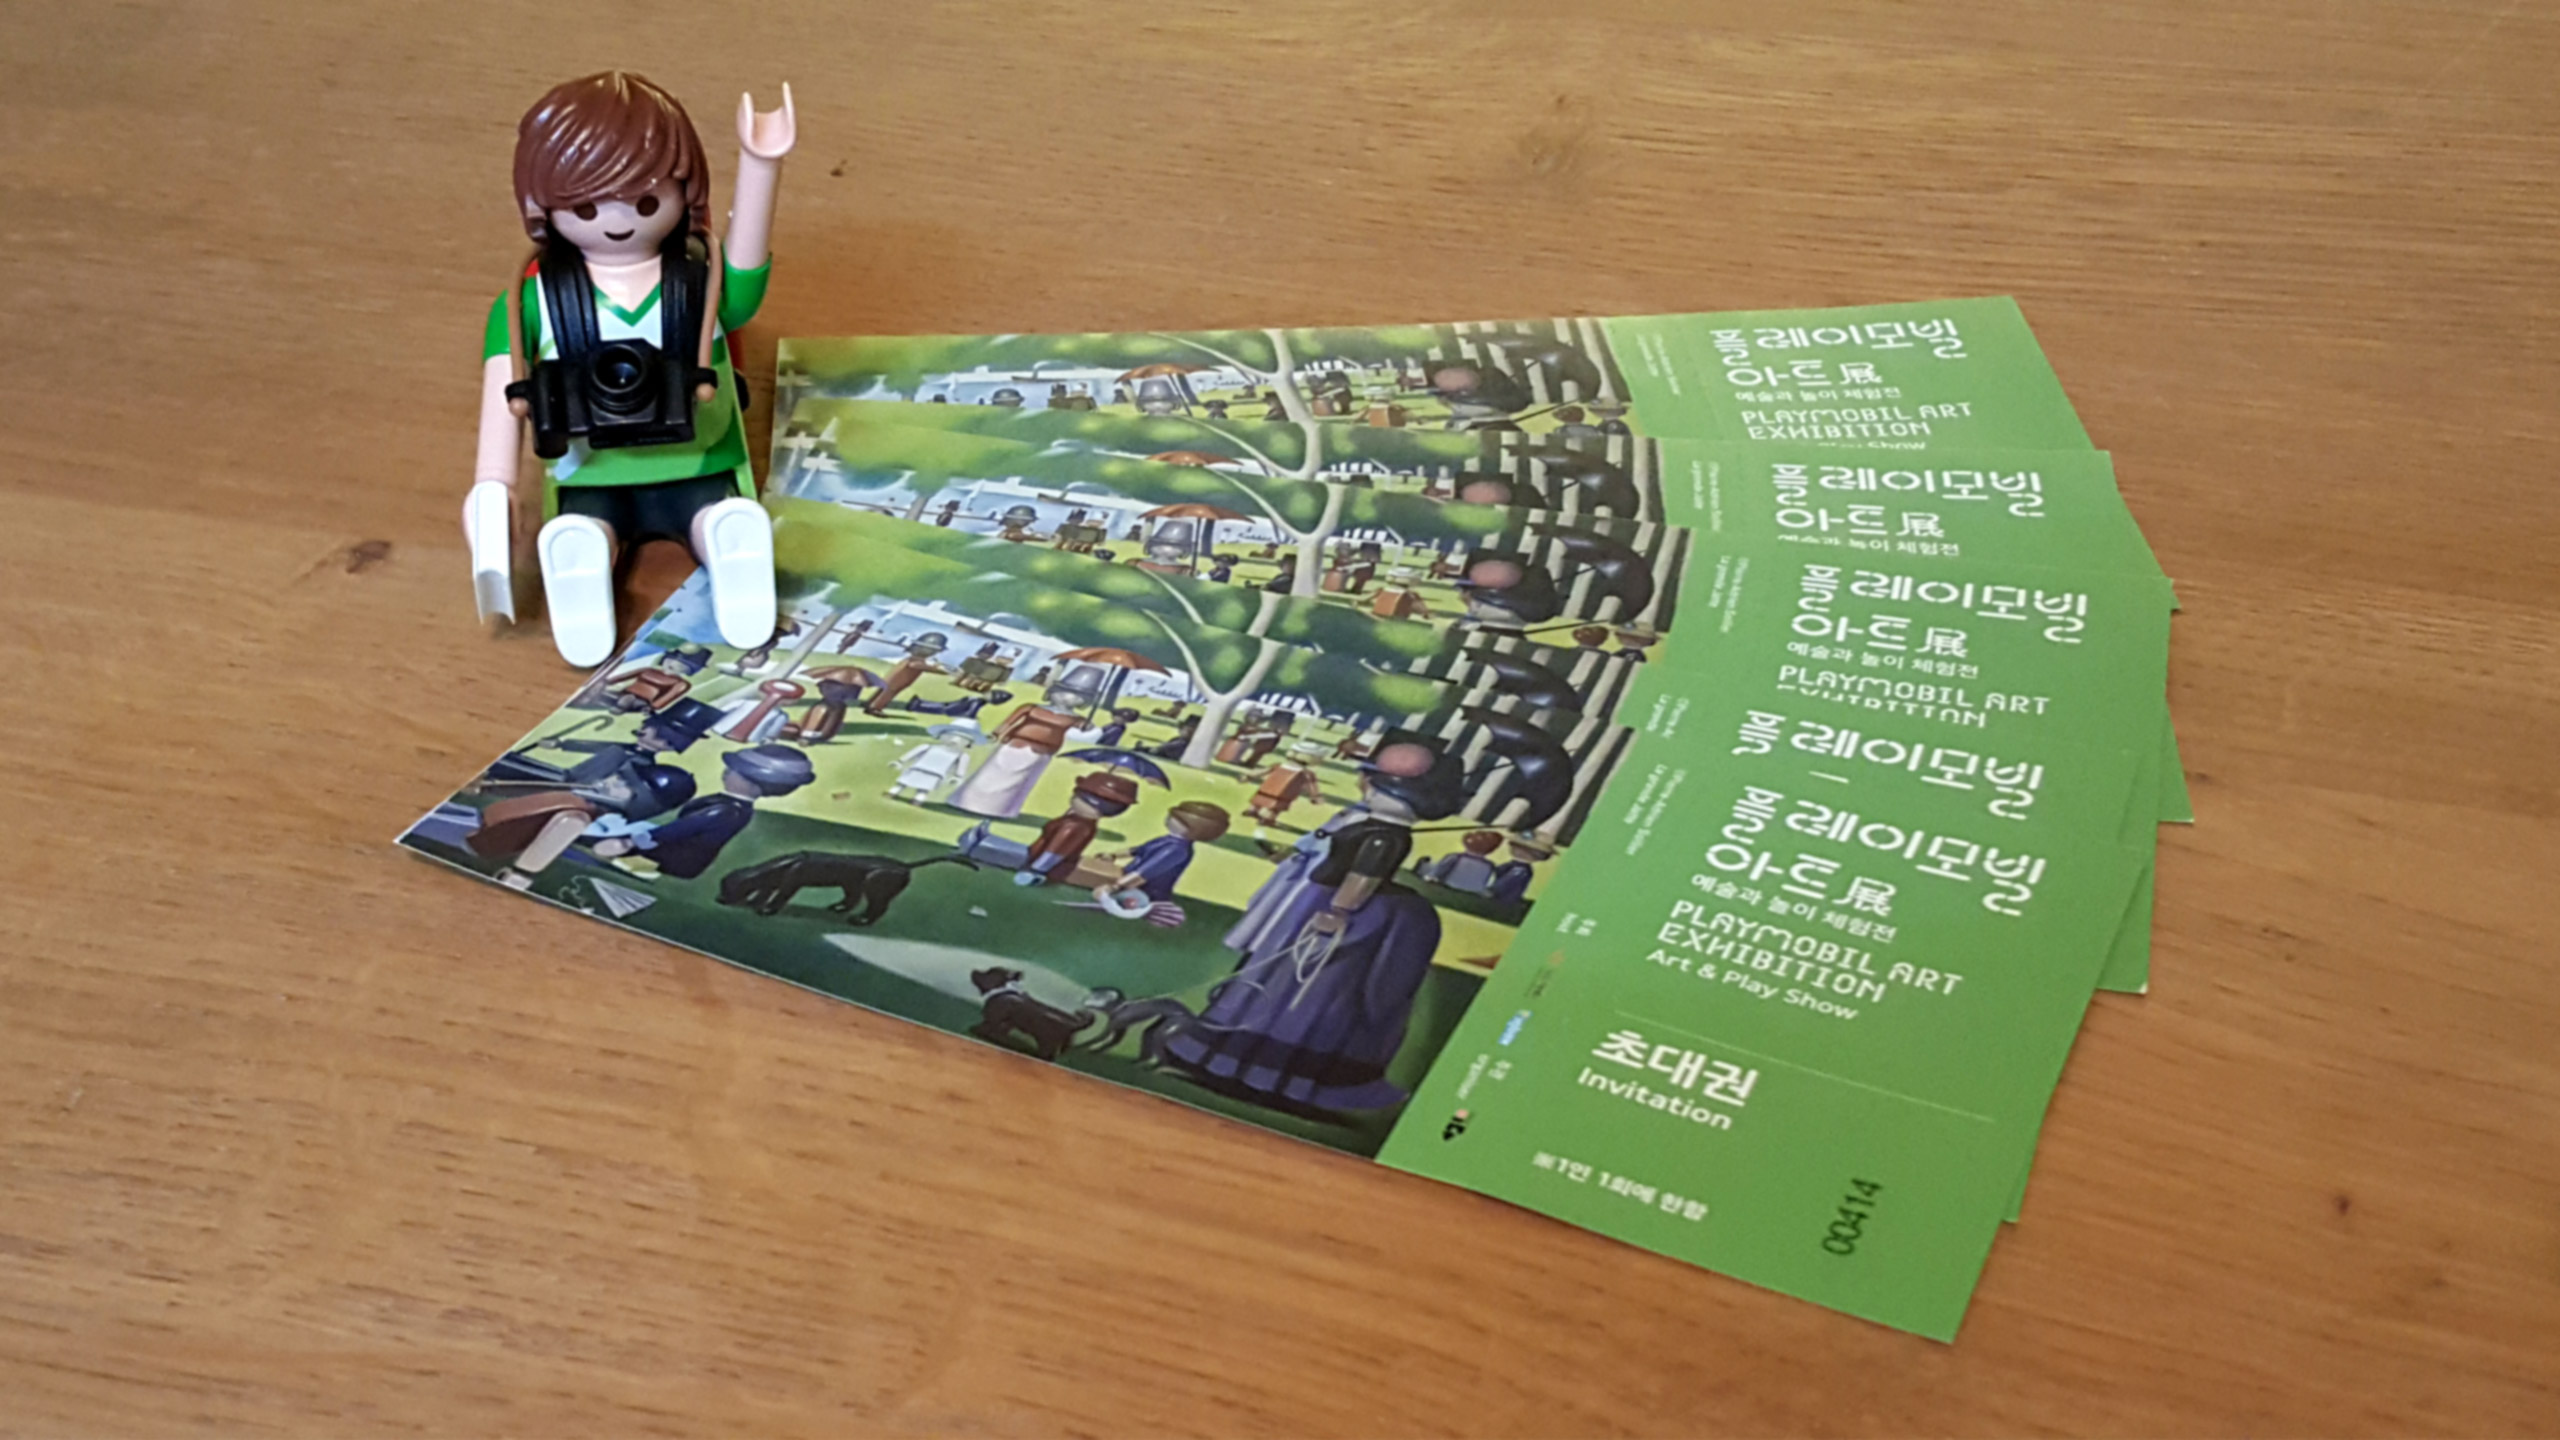 playmobil-tickets-01